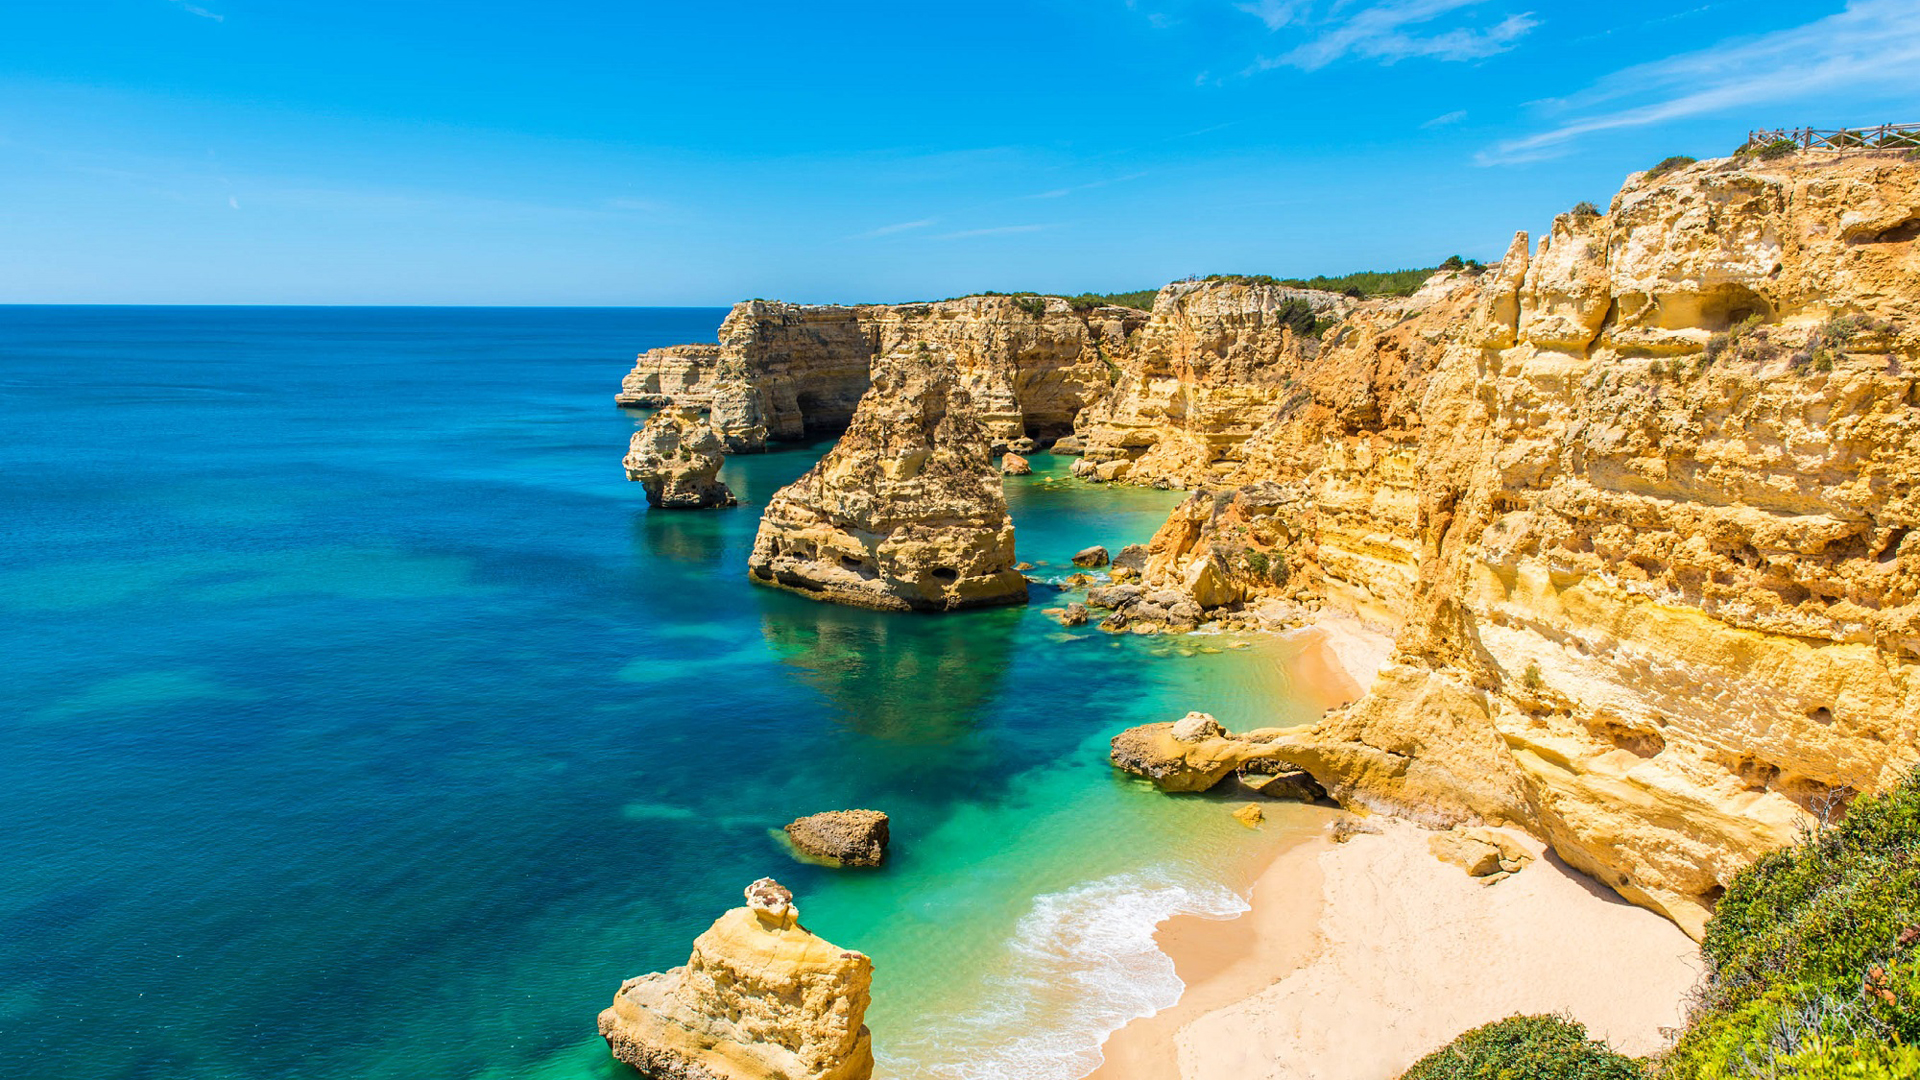 Seven Hanging Valleys: Europe's best hiking trail is at the heart of the Algarve